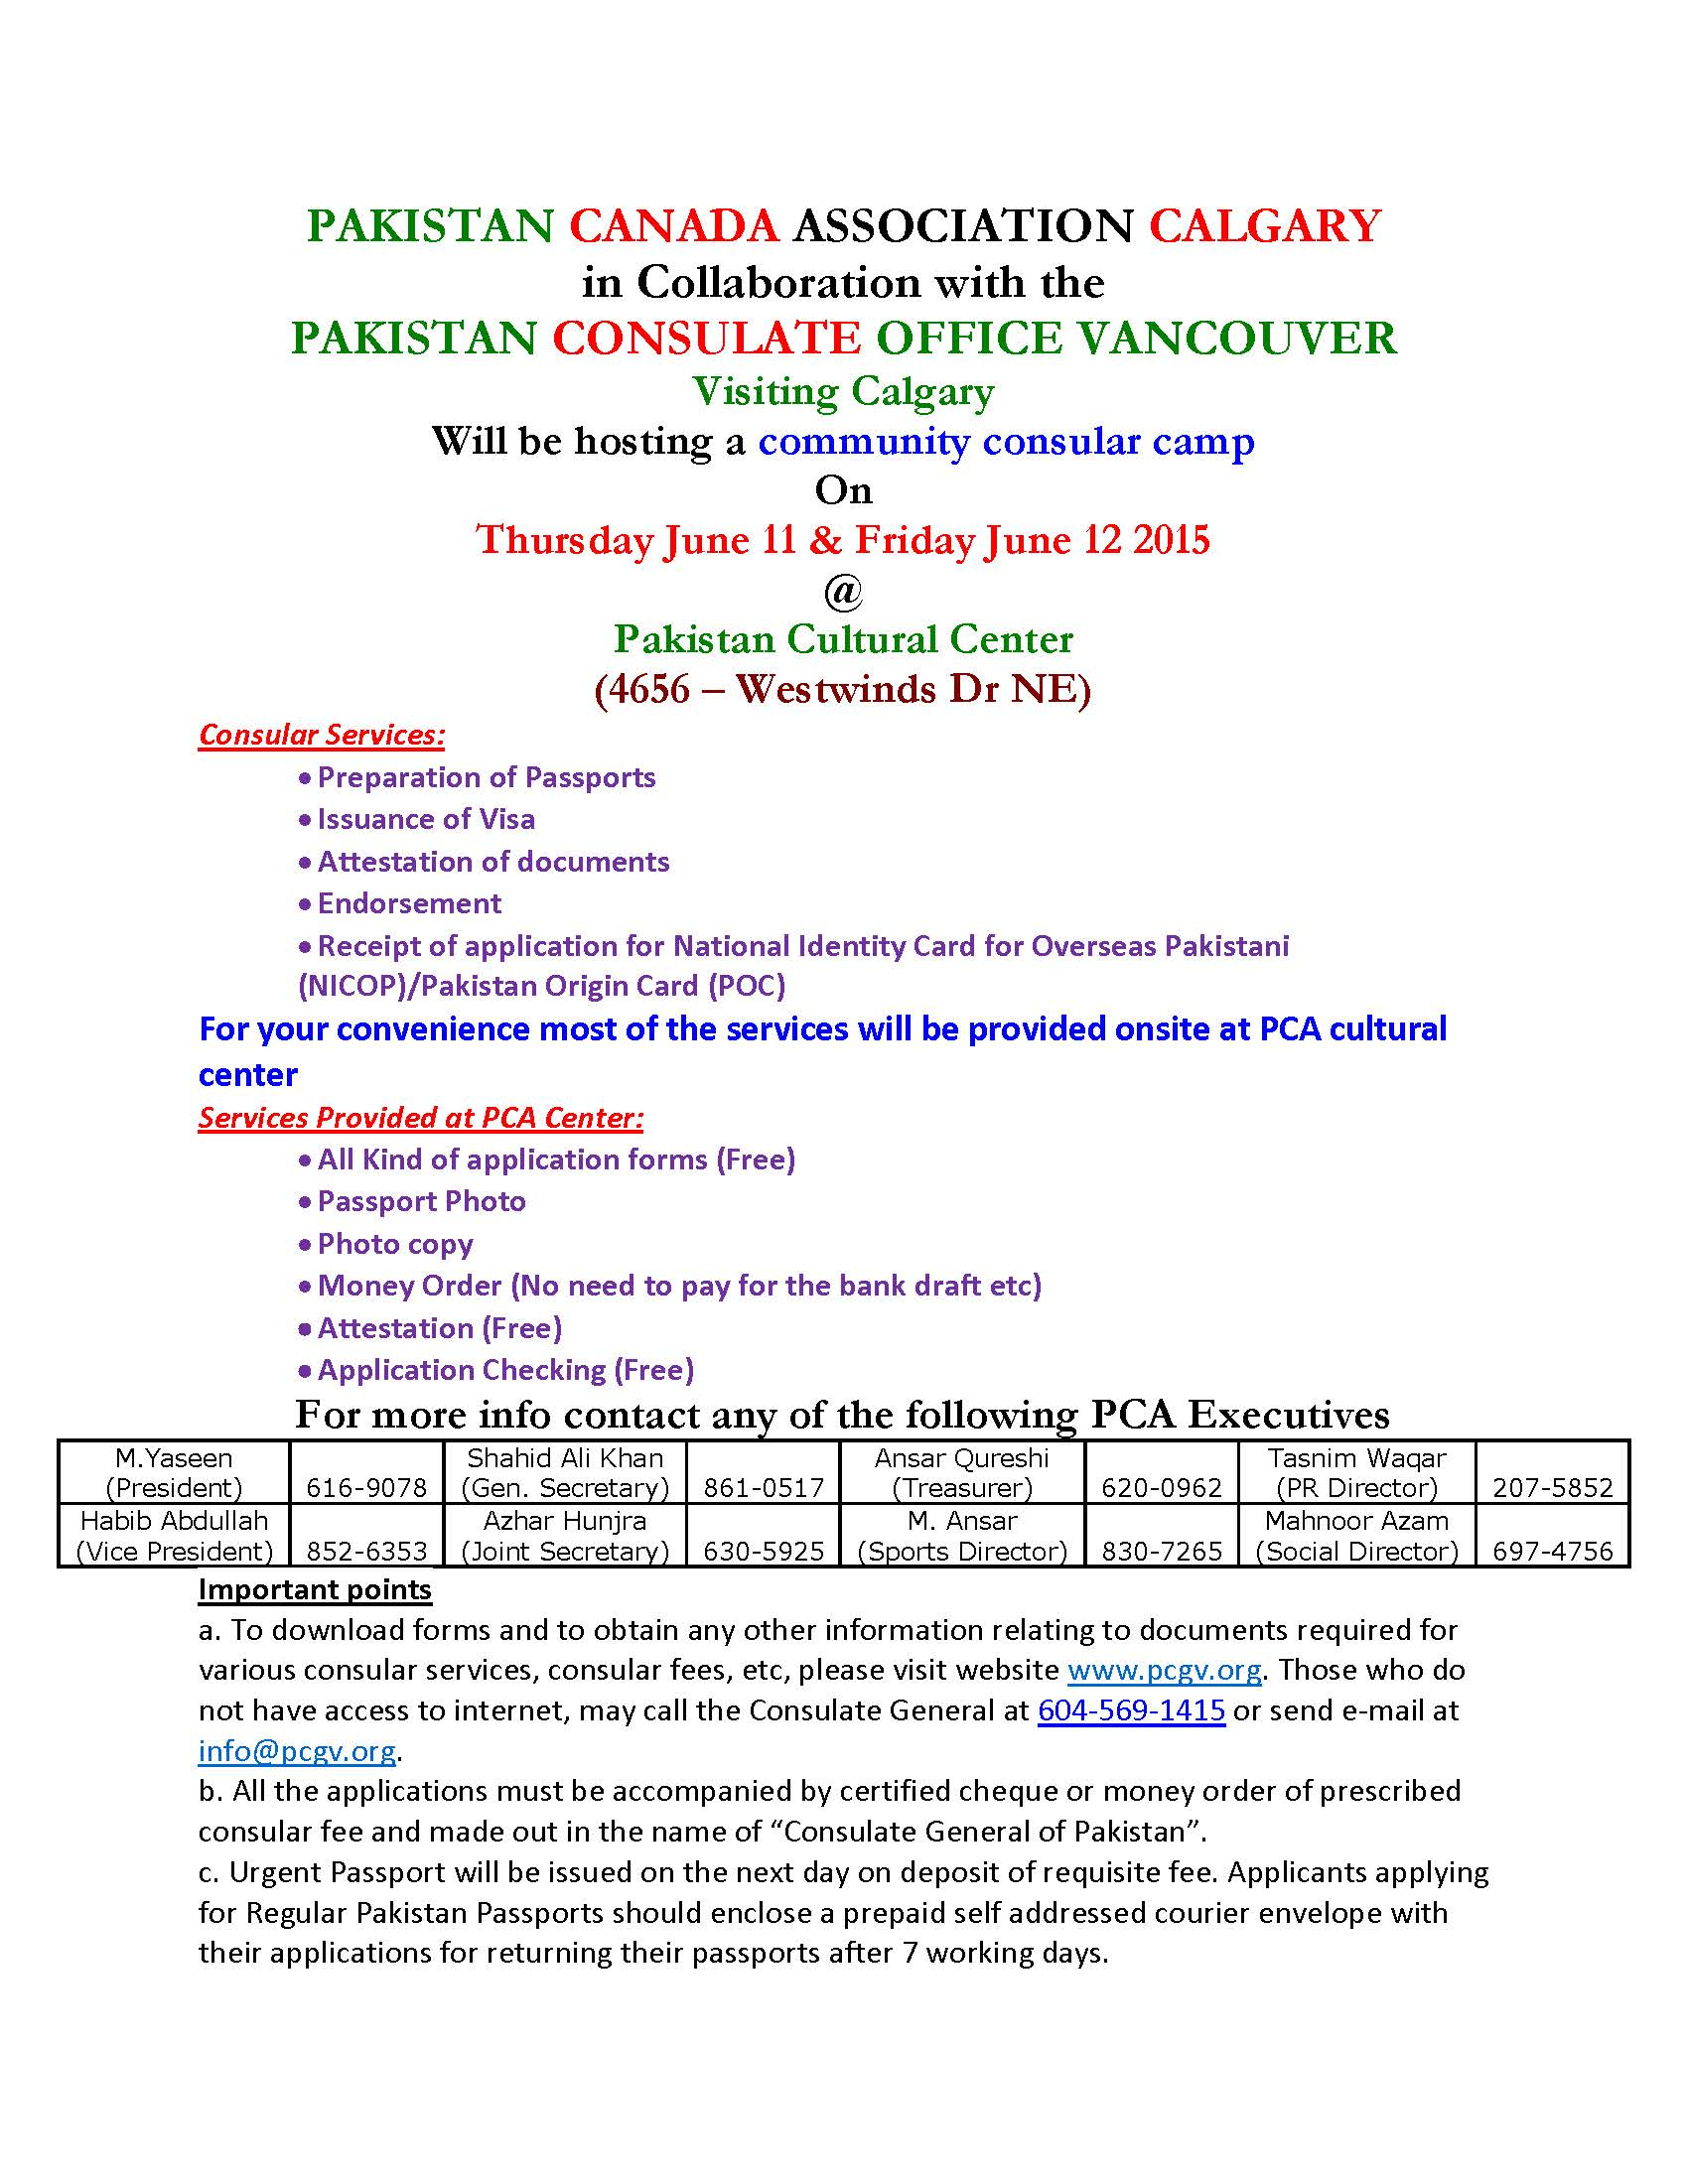 PCA Consular Camp Visit on June 11th and 12th, 2015